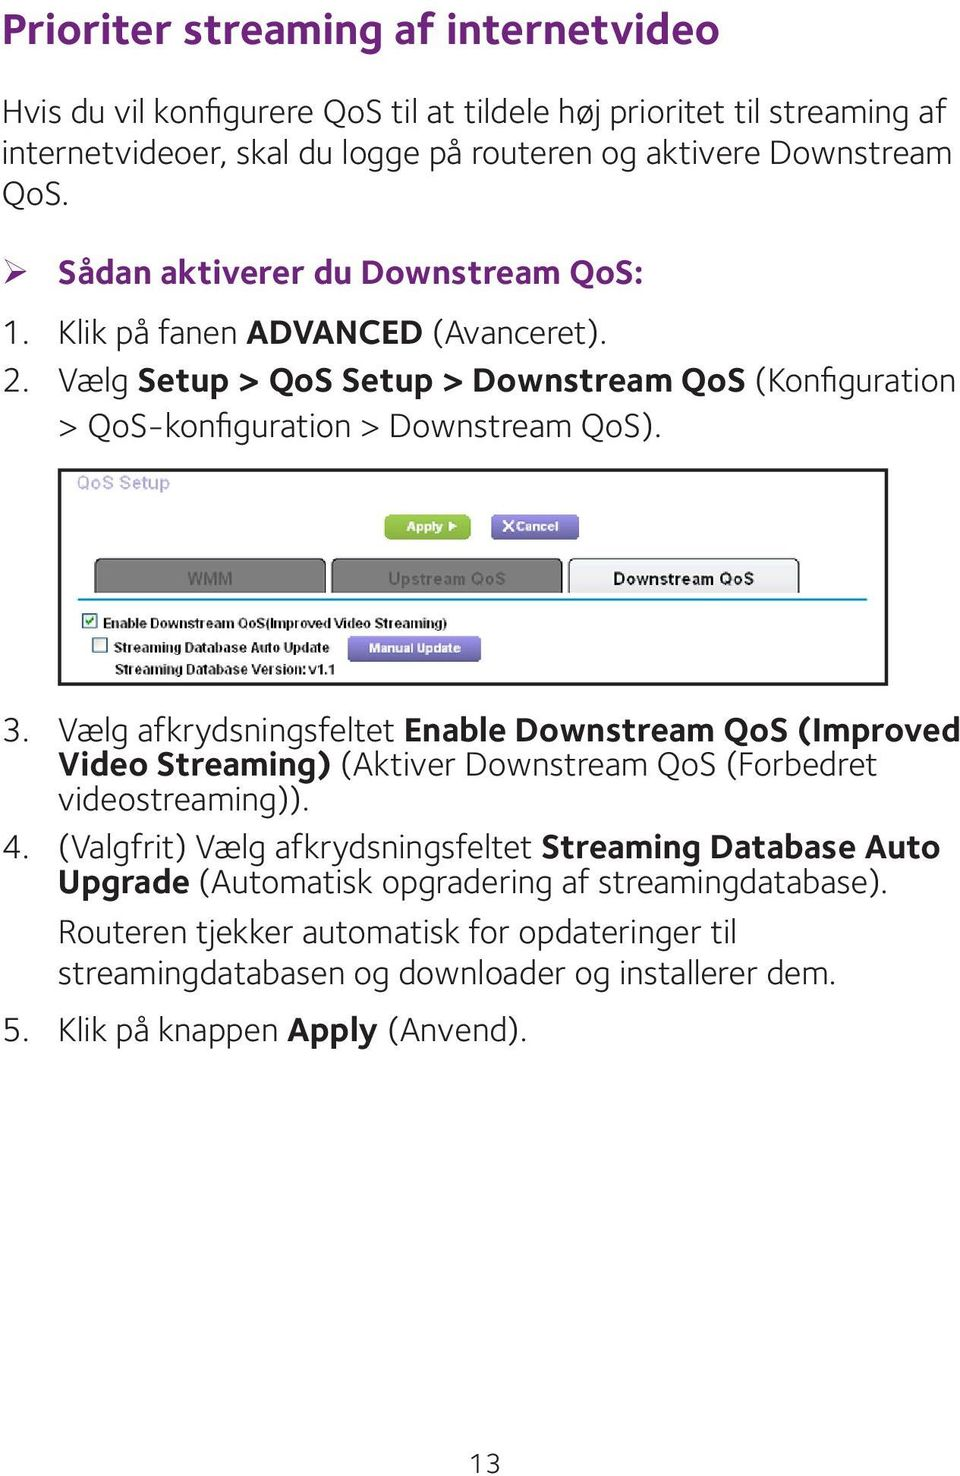 Vælg afkrydsningsfeltet Enable Downstream QoS (Improved Video Streaming) (Aktiver Downstream QoS (Forbedret videostreaming)). 4.